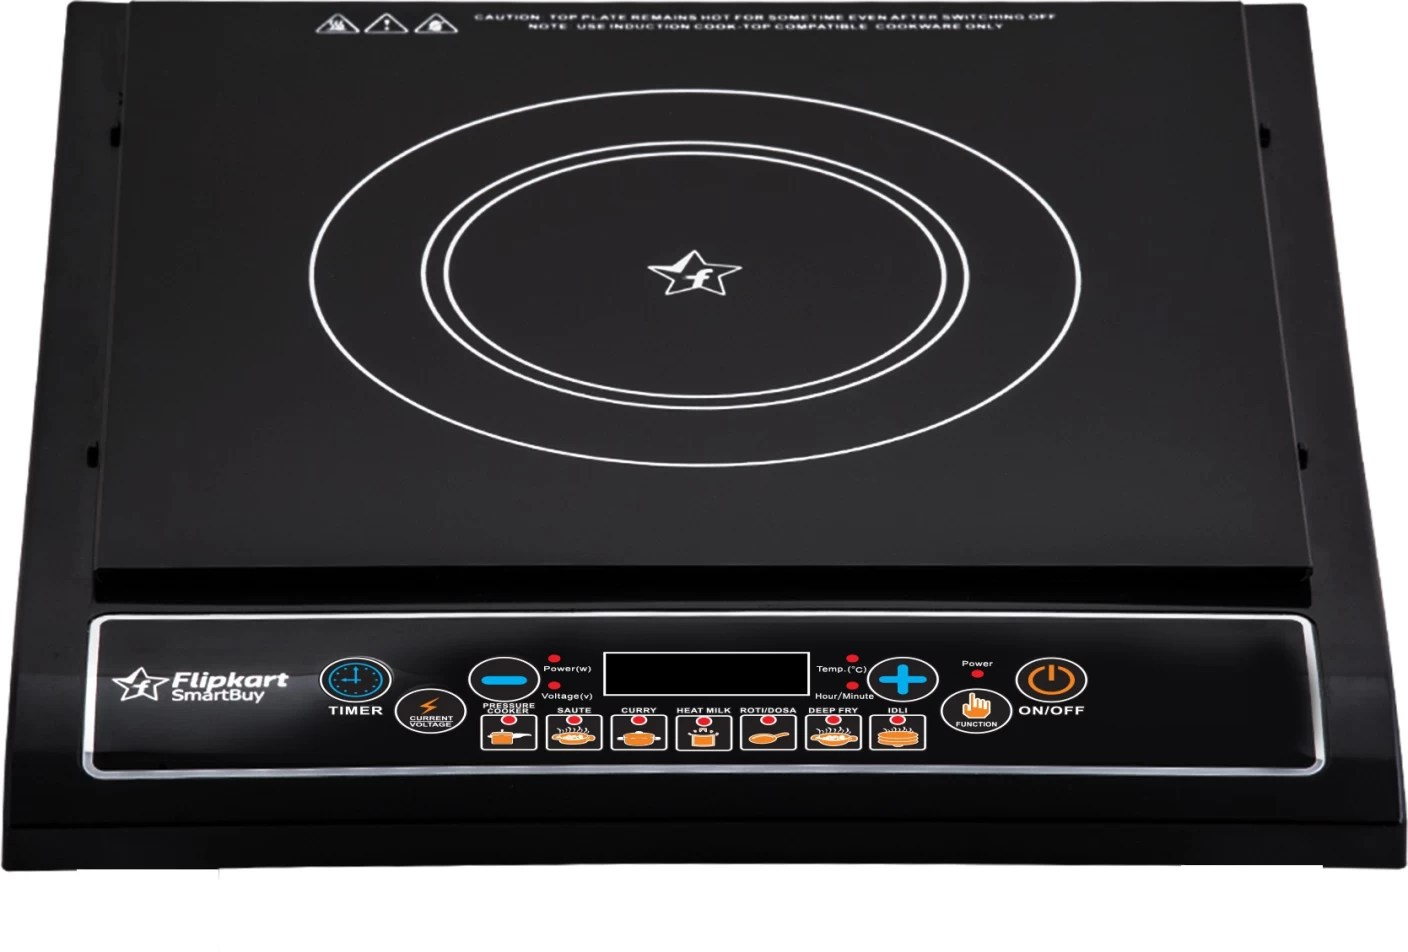 Induction Cooktop Flipkart Smartbuy Induction Cooktop Buy Flipkart